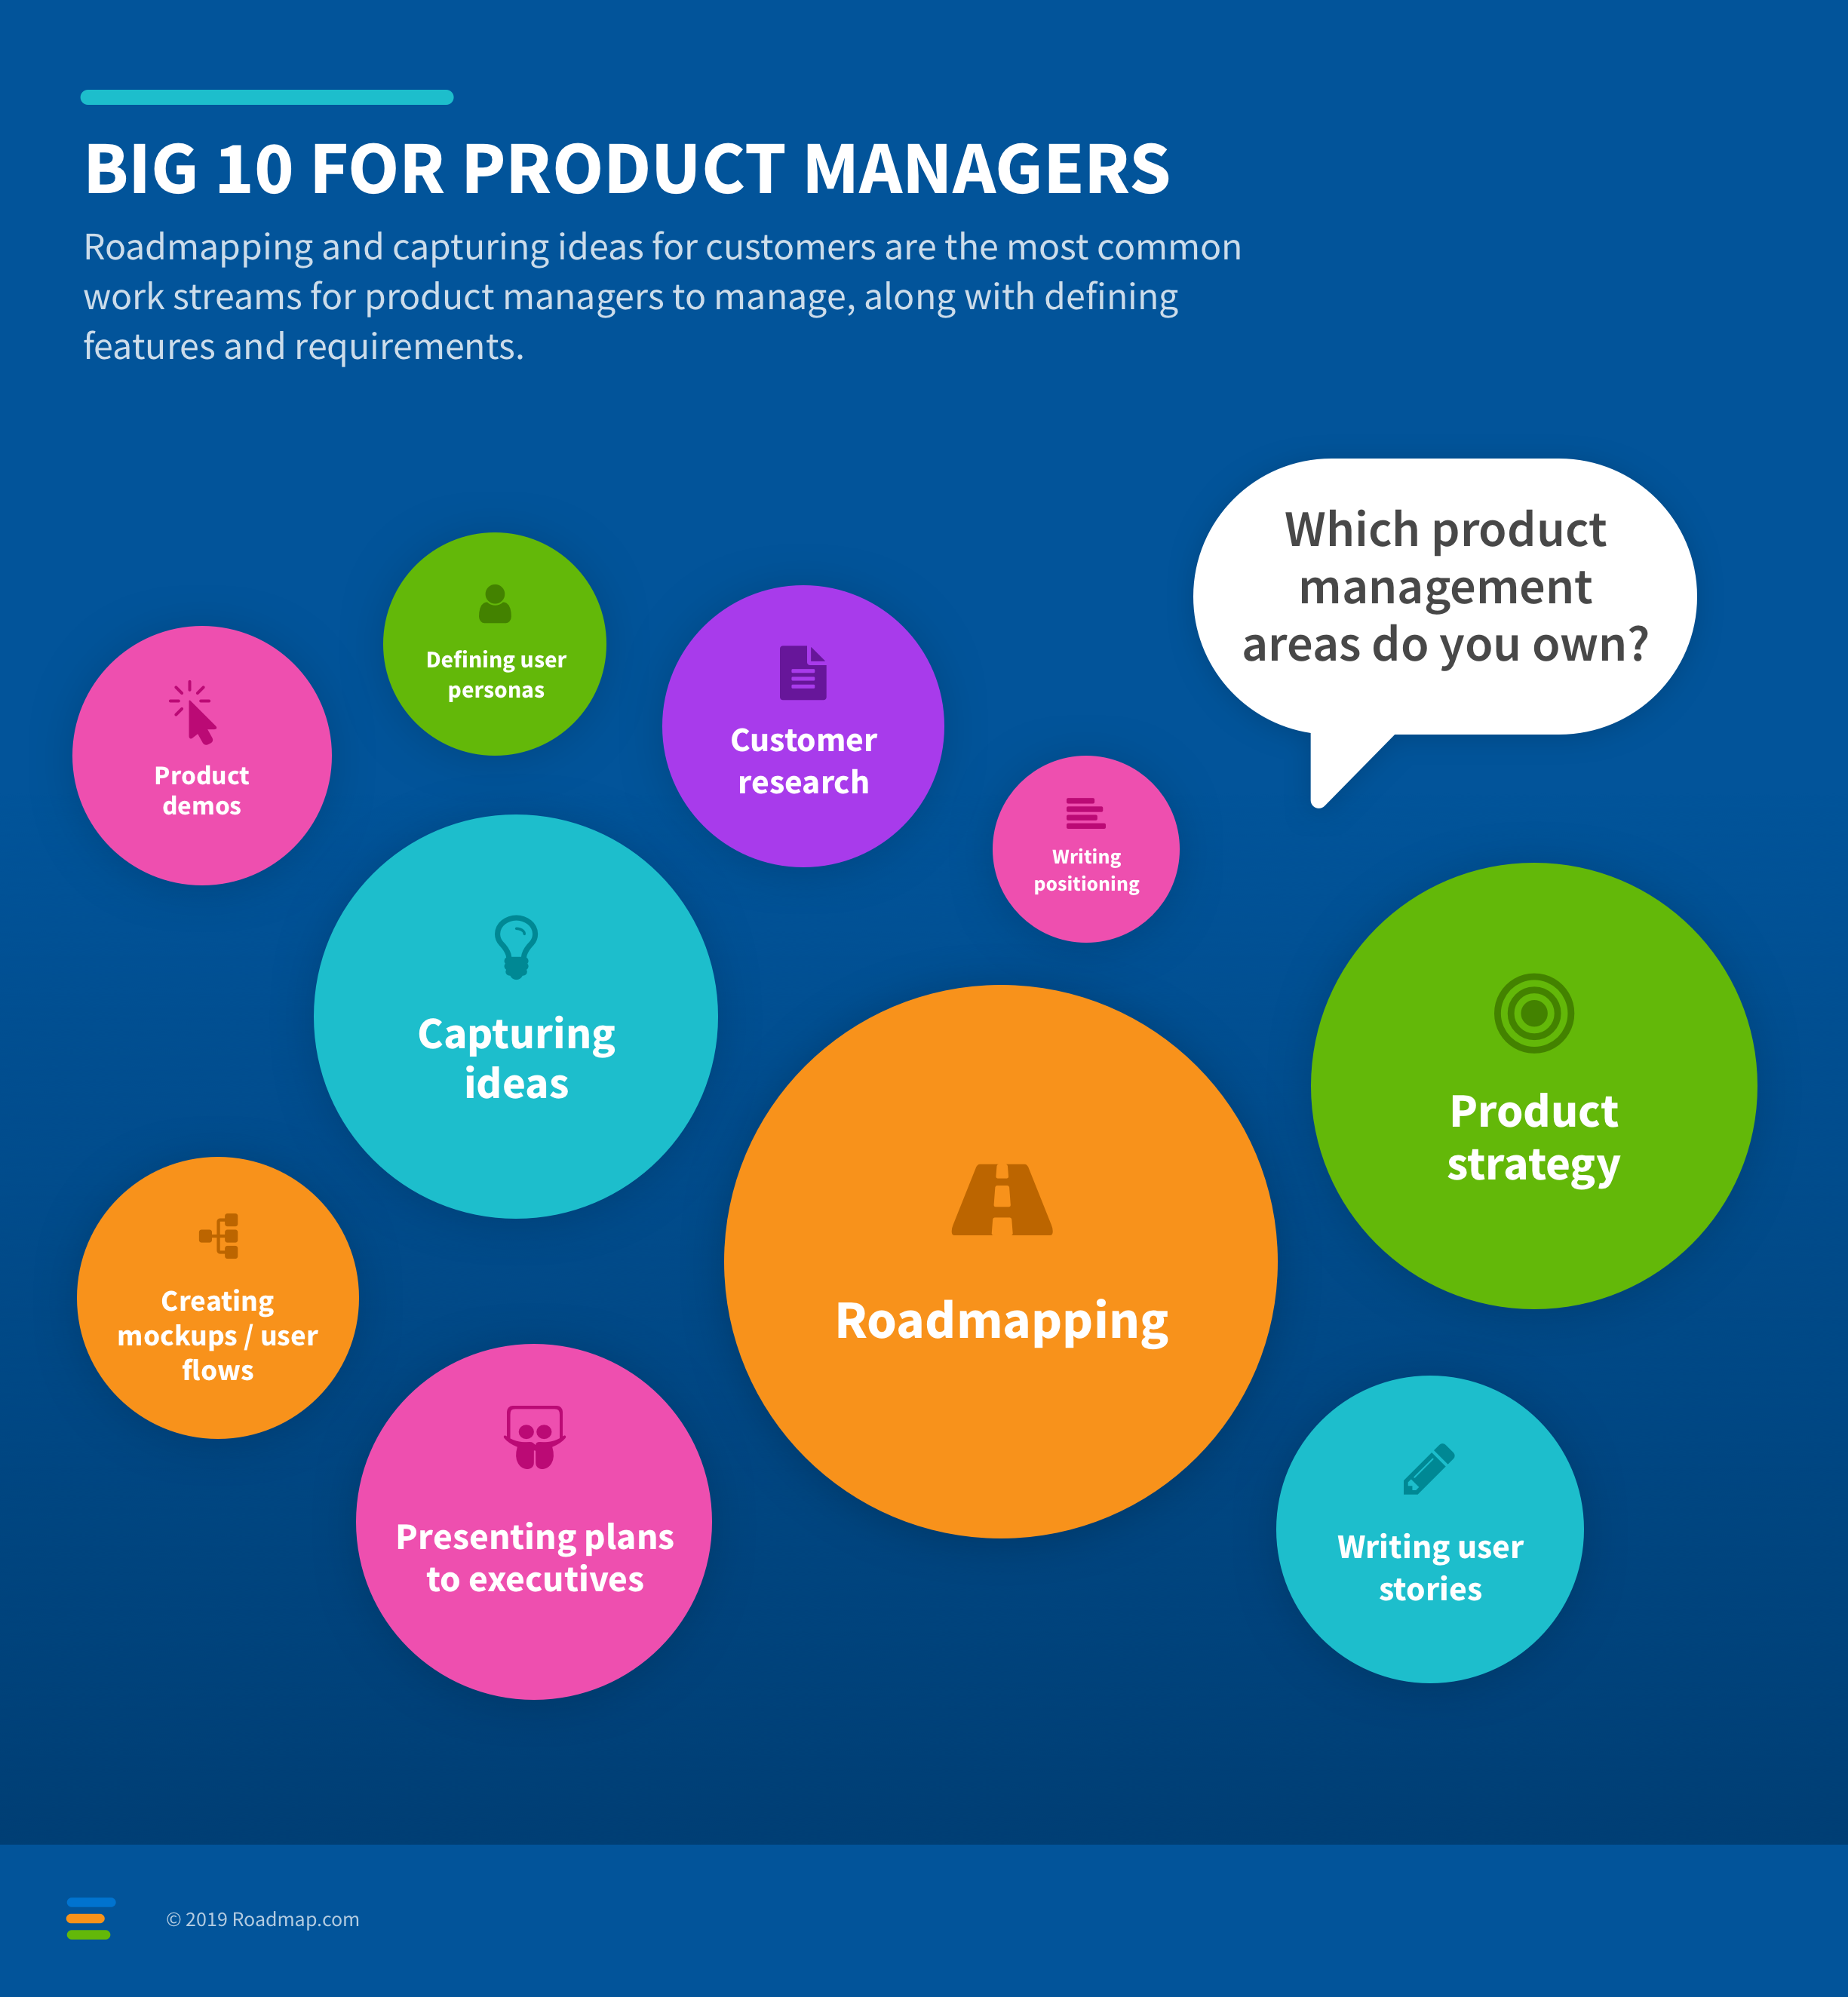 Blog - Roadmap.com Survey Shows Product Managers Struggle With Strategy and Marketing - inline image